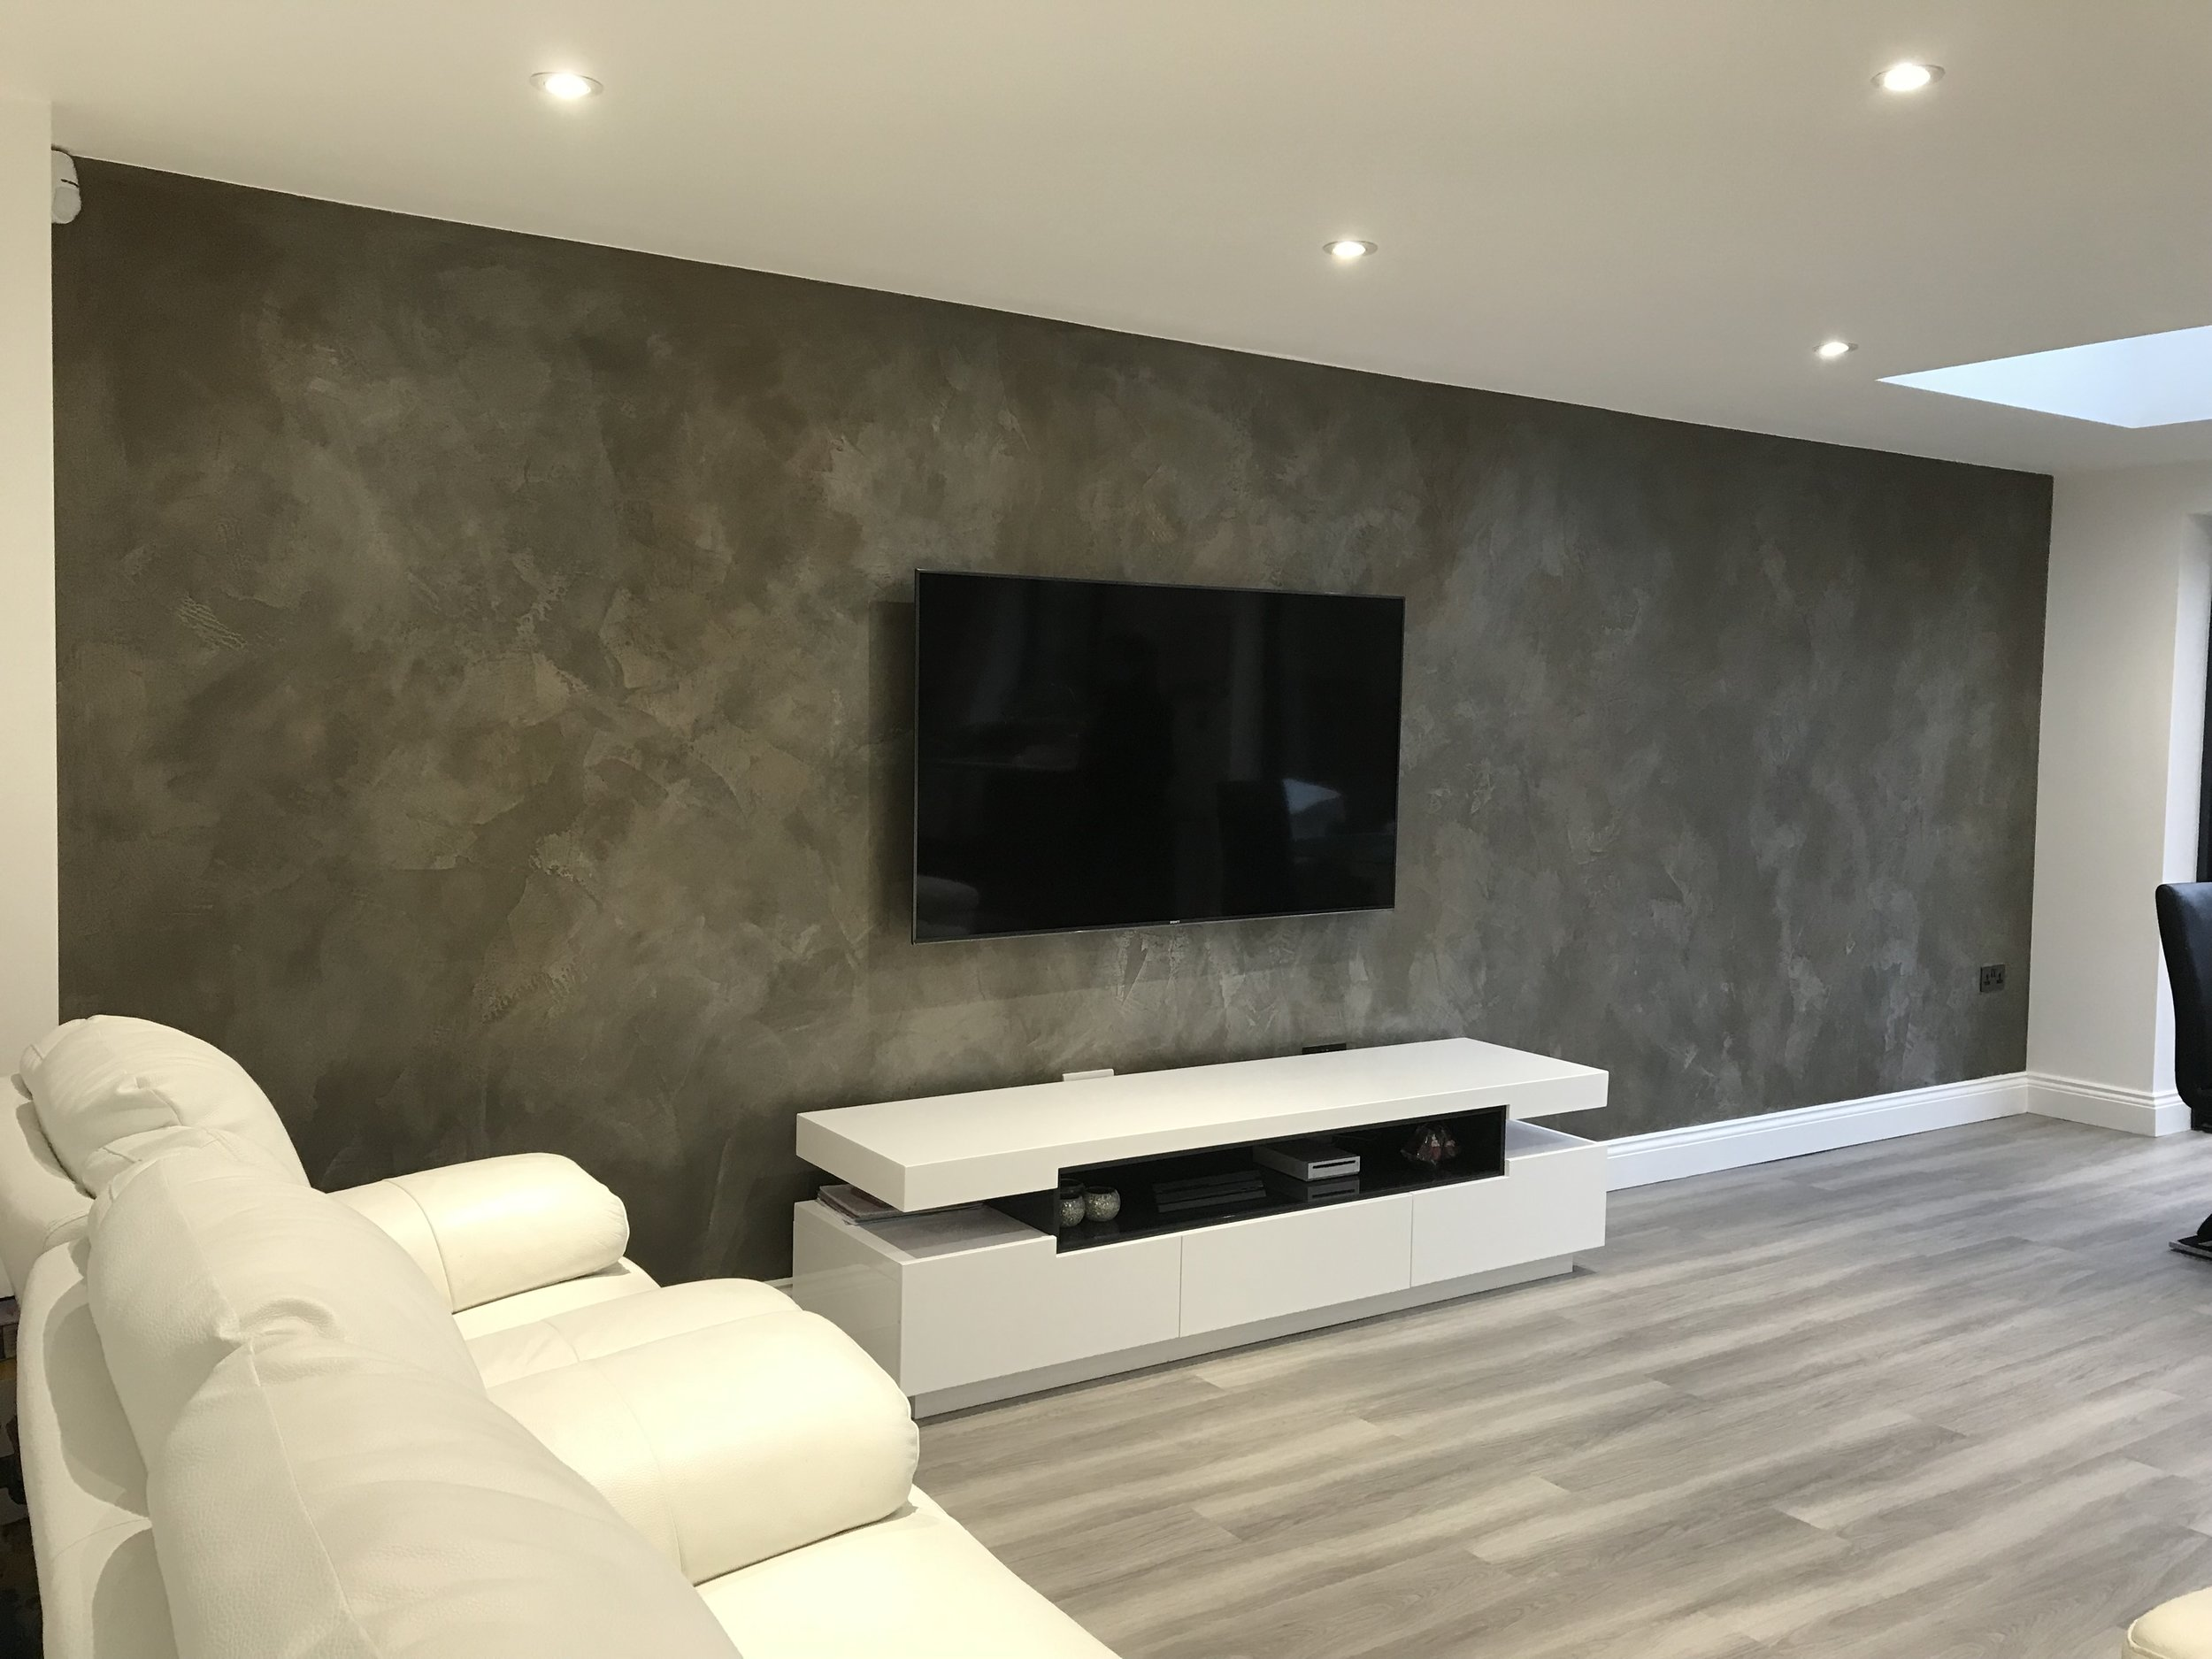 bespoke polished plaster feature wall finish grey silver bronze fabulous finishes uk 4.jpeg